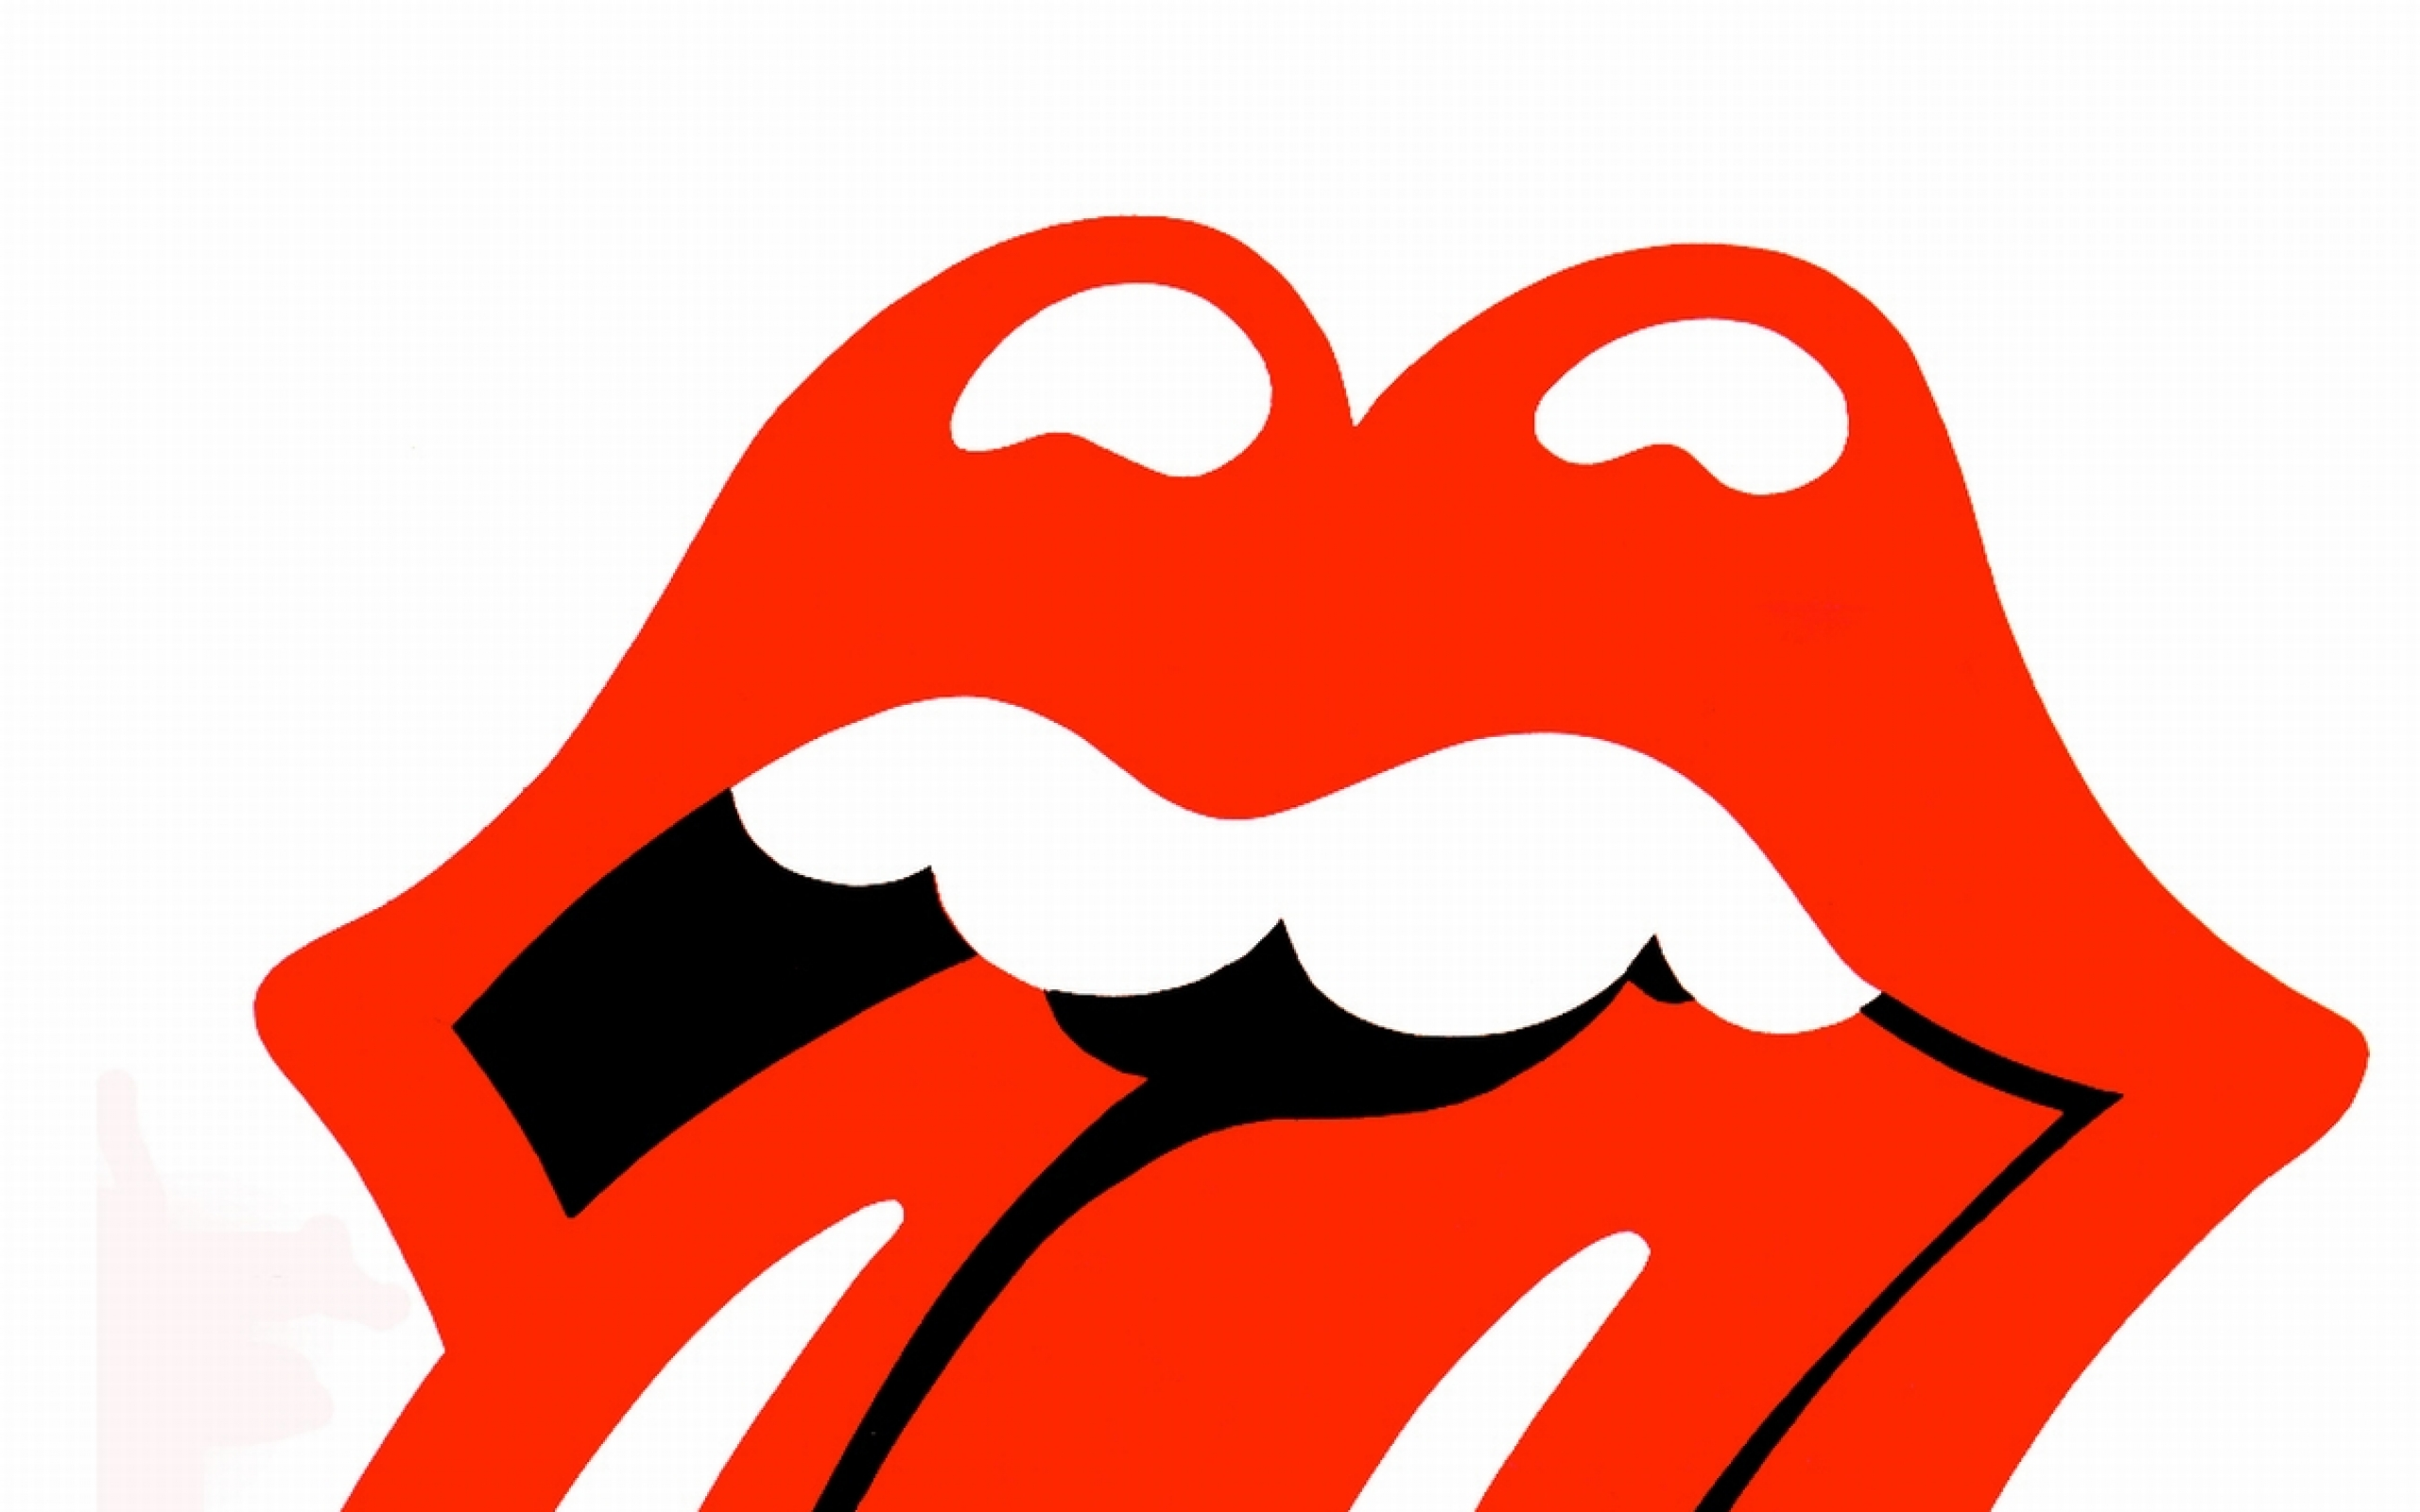 rolling stones tongue music bands Best WallpapersTop Wallpapers 2560x1600